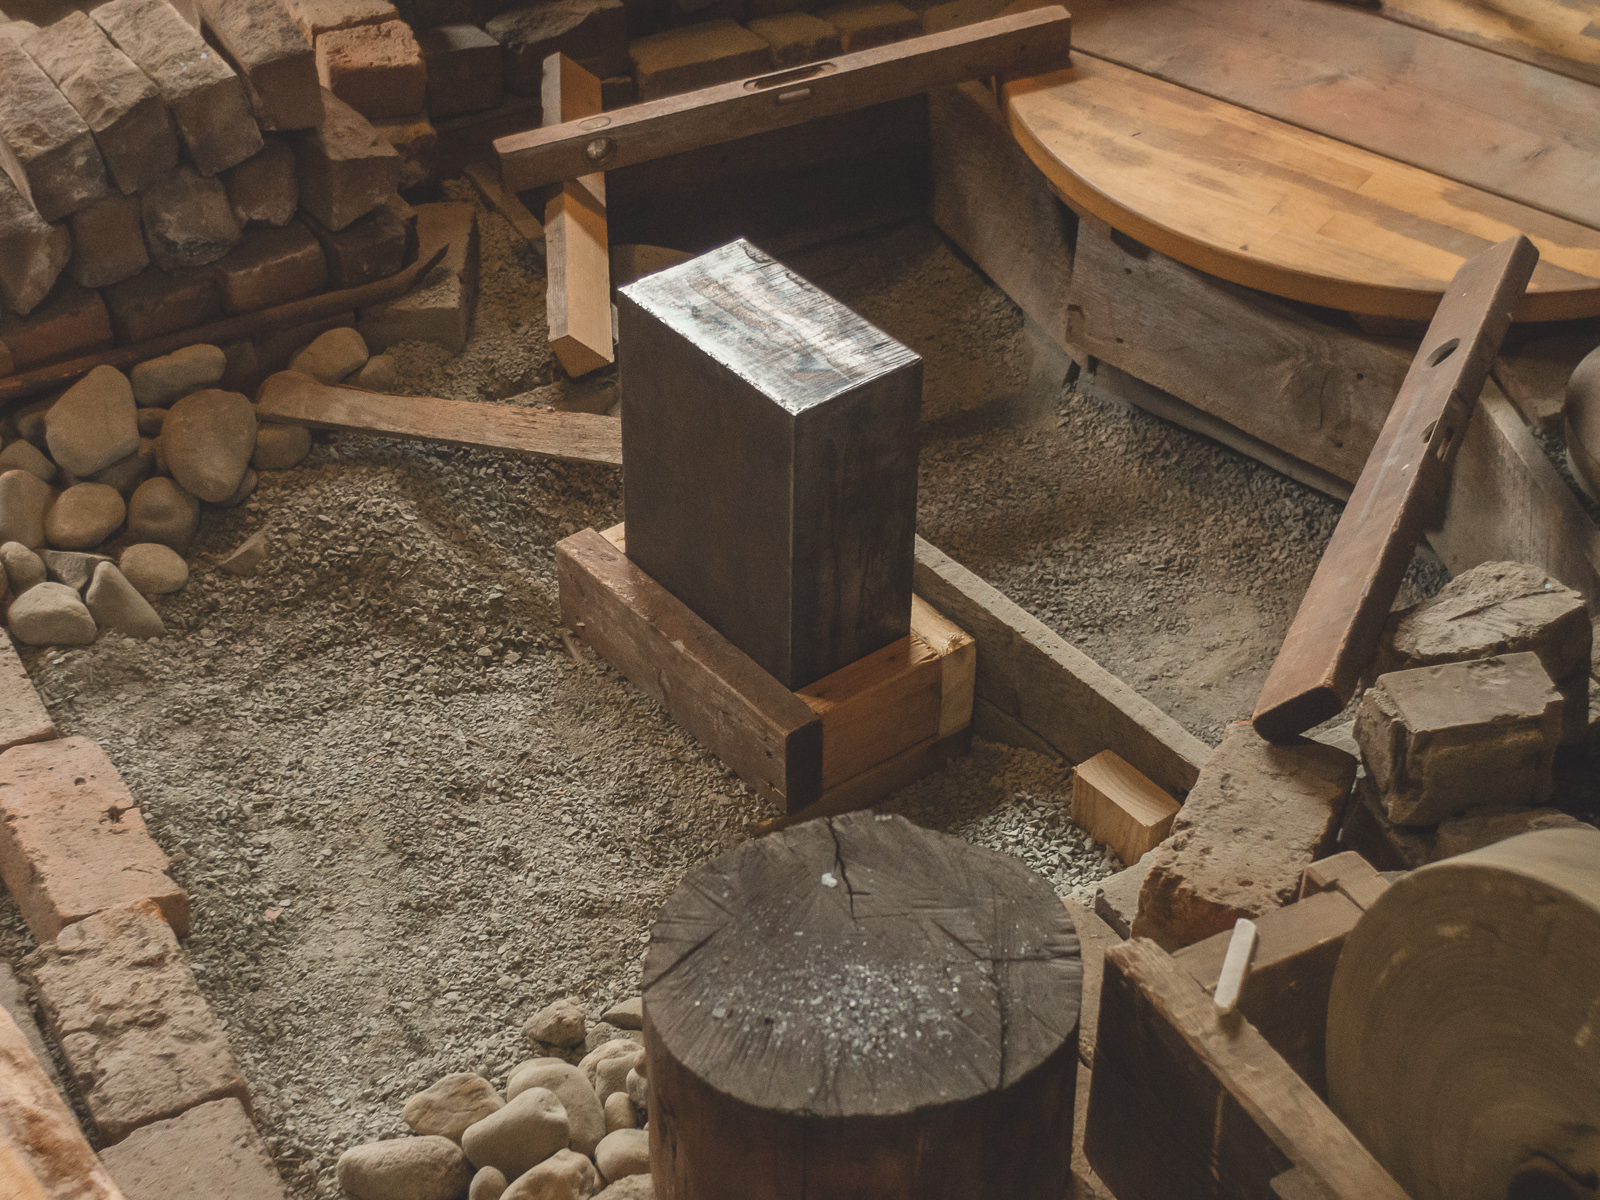 Island Blacksmith: Traditional Japanese style swordsmith anvil.